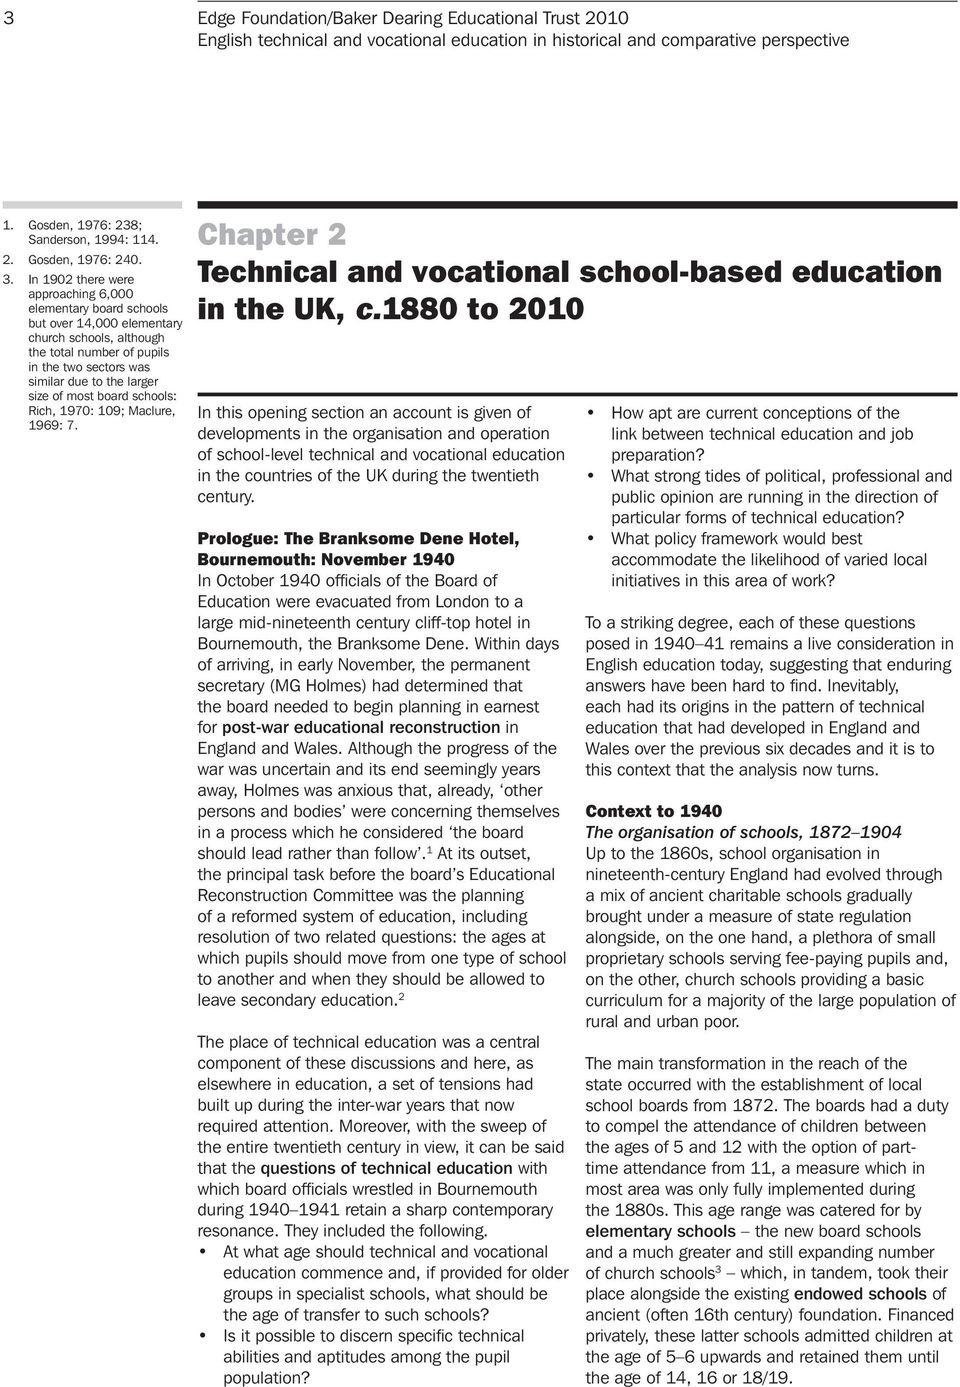 most board schools: Rich, 1970: 109; Maclure, 1969: 7. Chapter 2 Technical and vocational school-based education in the UK, c.